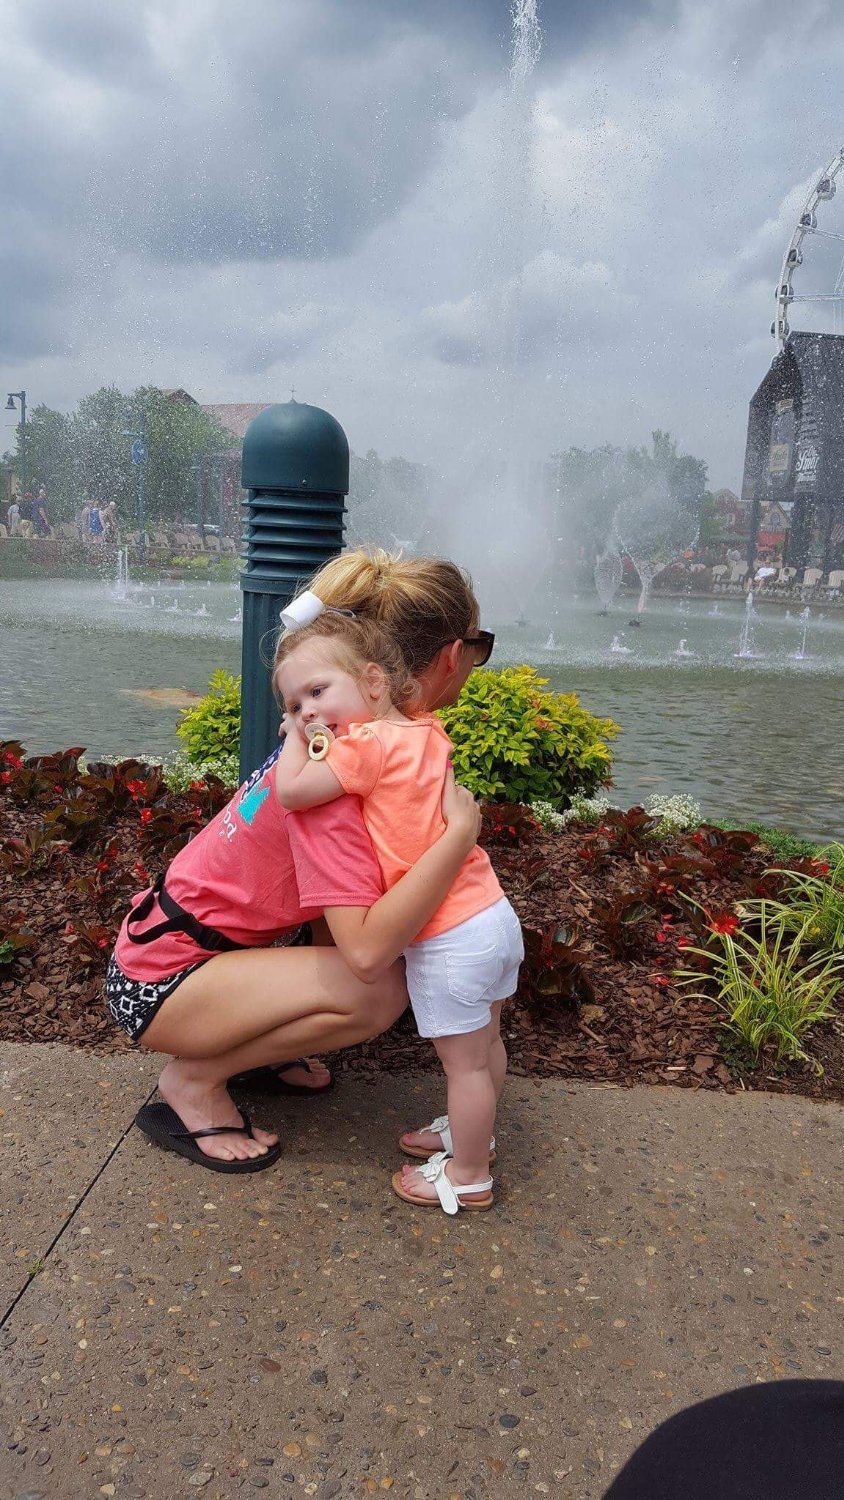 My daughter and granddaughter in front of the water.